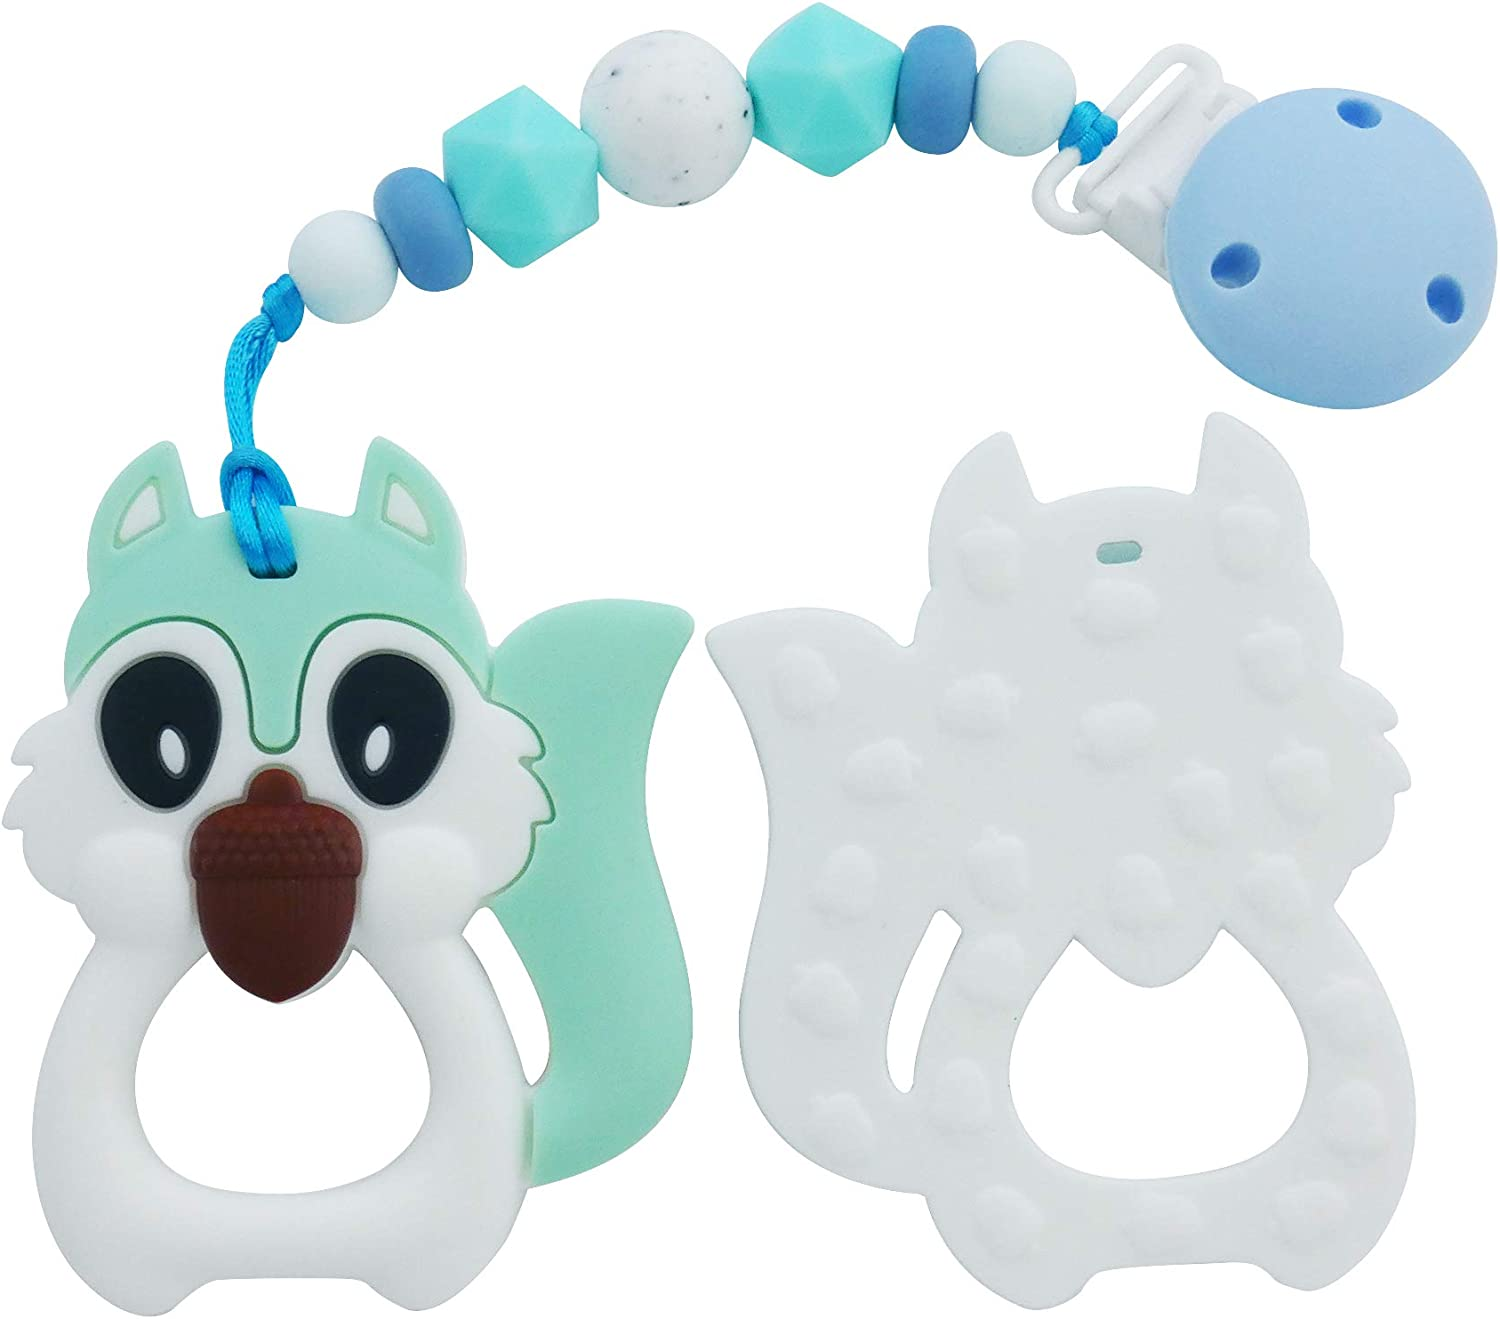 Natural White Mint for Boys /& Girls Soothing Teething Relief Instant Kute Keiki Squirrel Silicone Baby Teether Toy with Pacifier Clip Non-Toxic /& BPA Free Freezer /& Dishwasher Safe